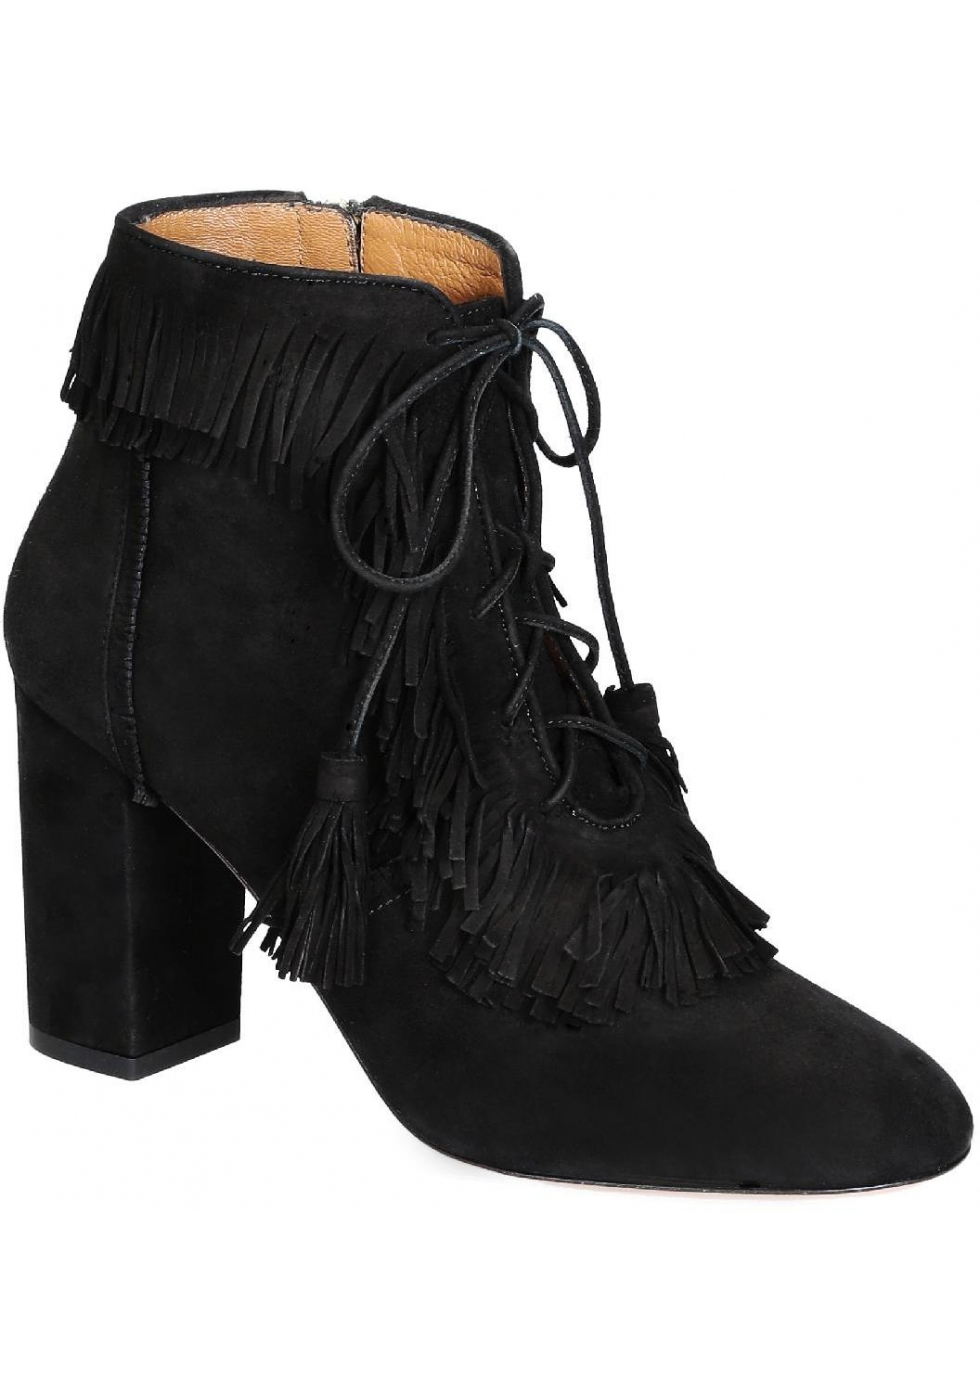 2018 Unisex Online Aquazzura High In Leather Free Shipping Many Kinds Of Cheap Sale Clearance Store Clearance The Cheapest Footlocker Online jAF9NthwJ